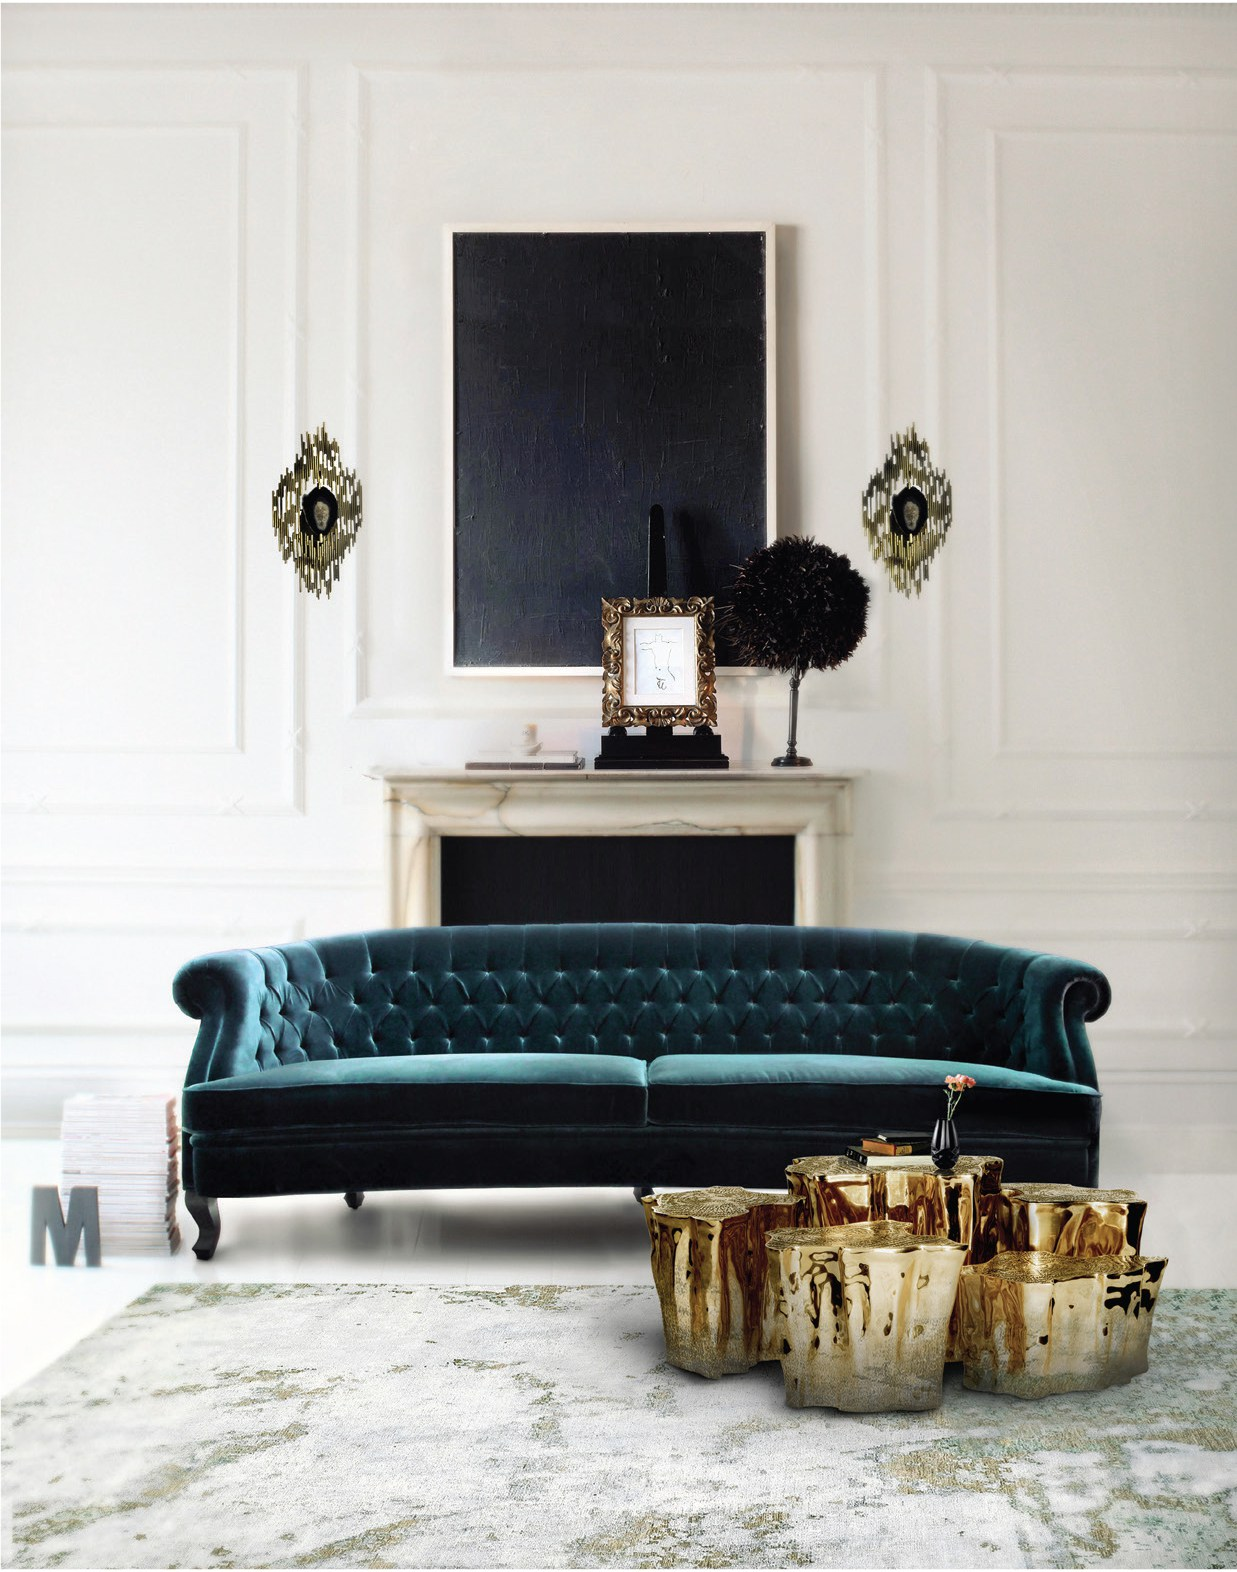 modern look living room how to decorate my small for christmas get a classic inspiration design books blog under large piece of or contemporary art and it will fabulous s about creating sense balance order